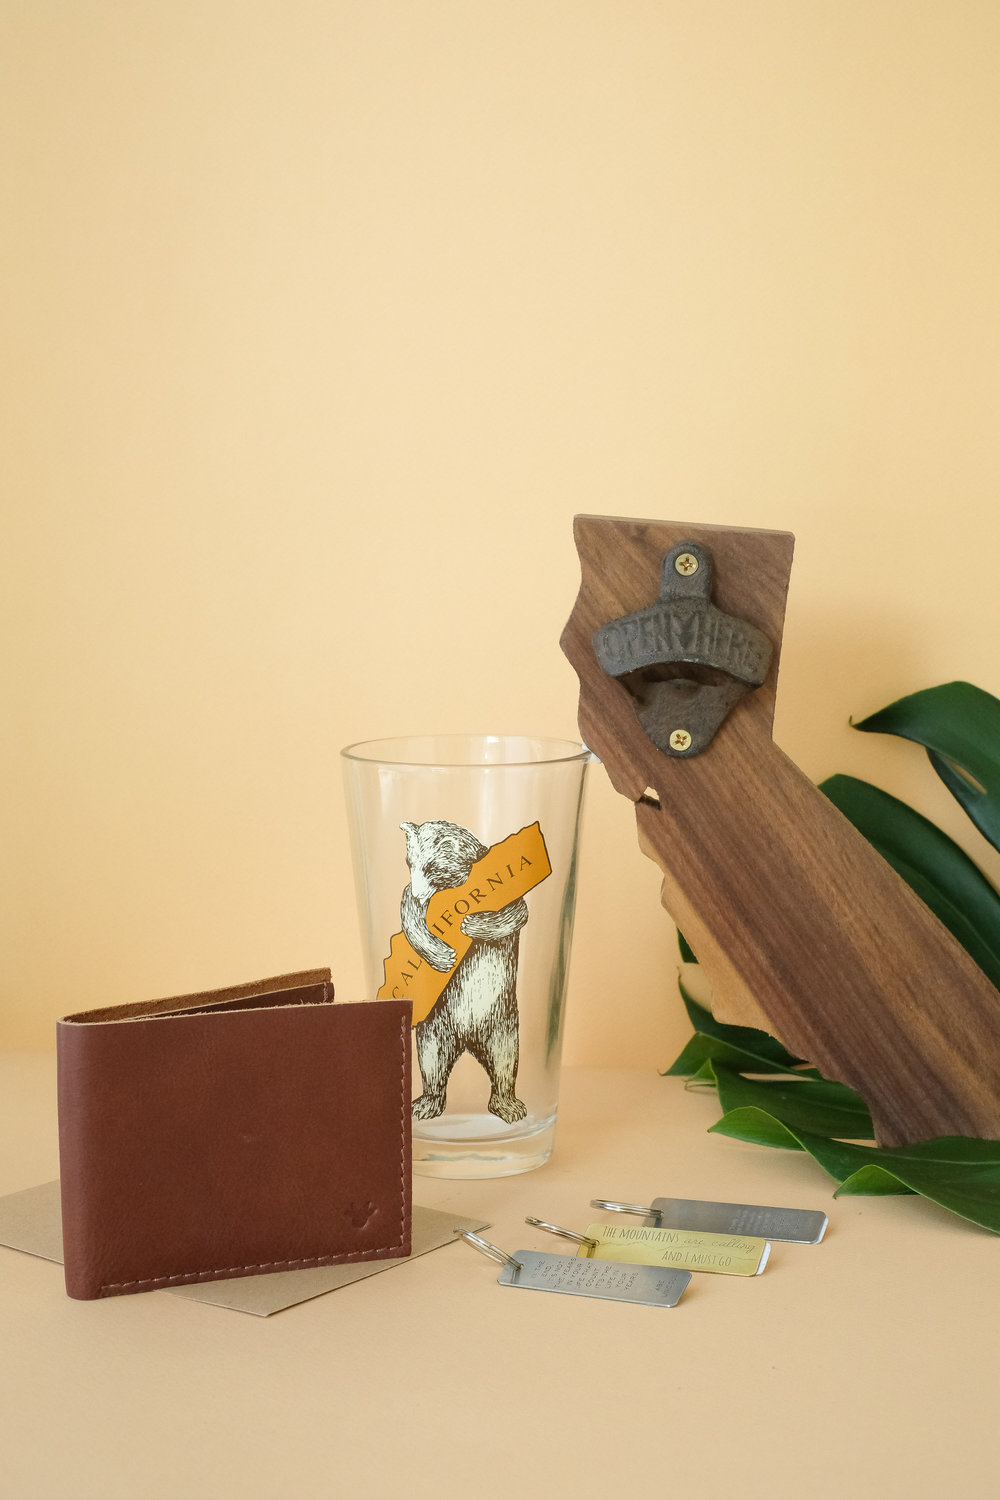 Kiko Wallet, Krista Tranquilla quote keychains, SF Mercantile bear pint glass, and California wooden bottle opener